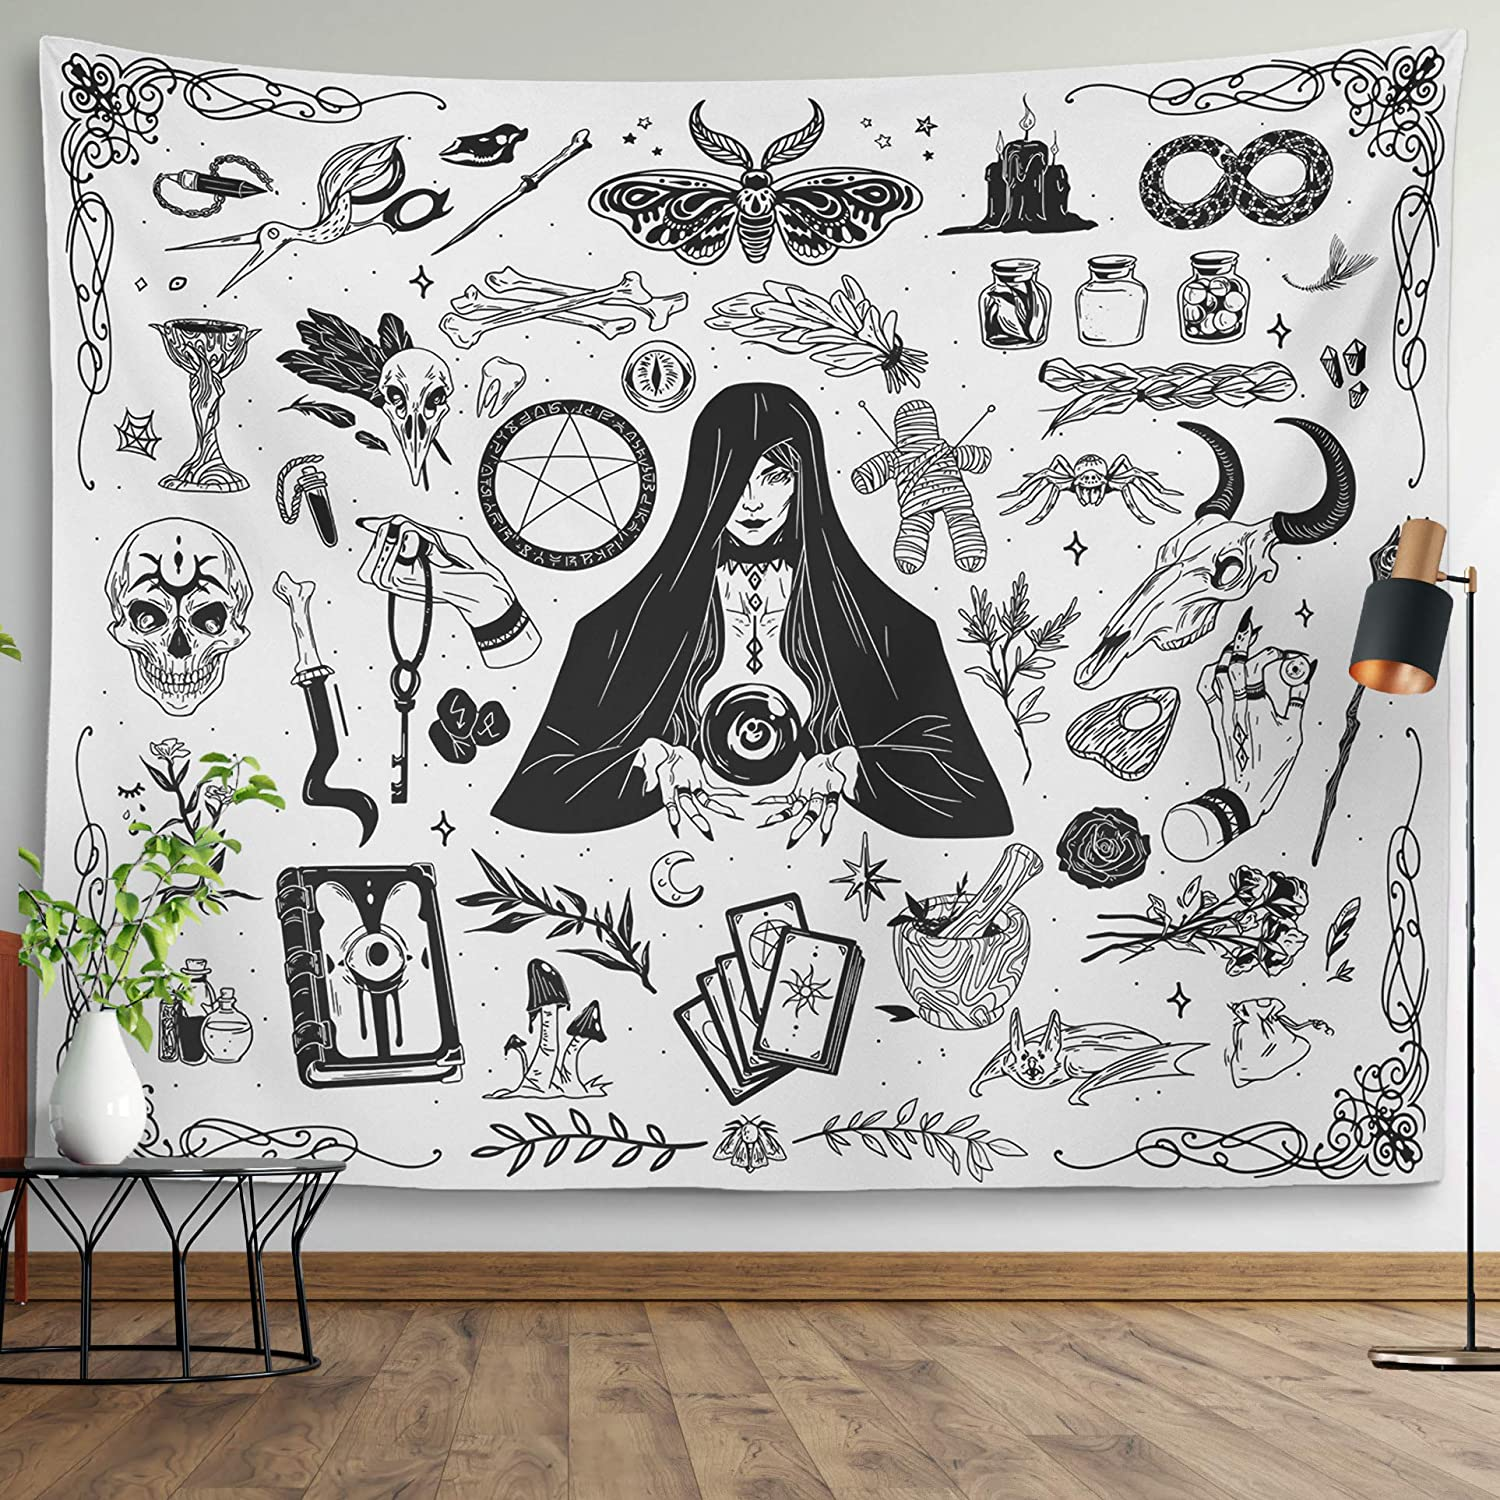 Gothic Witchy Tapestry Witchcraft Magic Moon Skulls Spells Witch Kit Black and White Wall Hanging Goth Wall Decor Witch Tapestry (White, 51